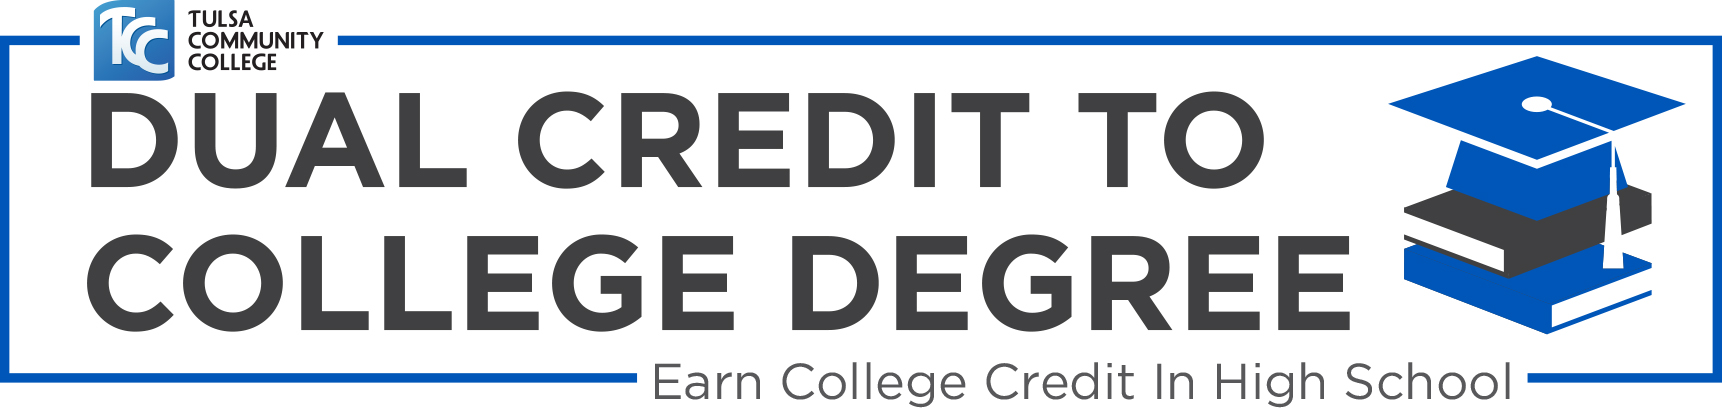 Dual Credit to College Degree. Earn College Credit in High School.